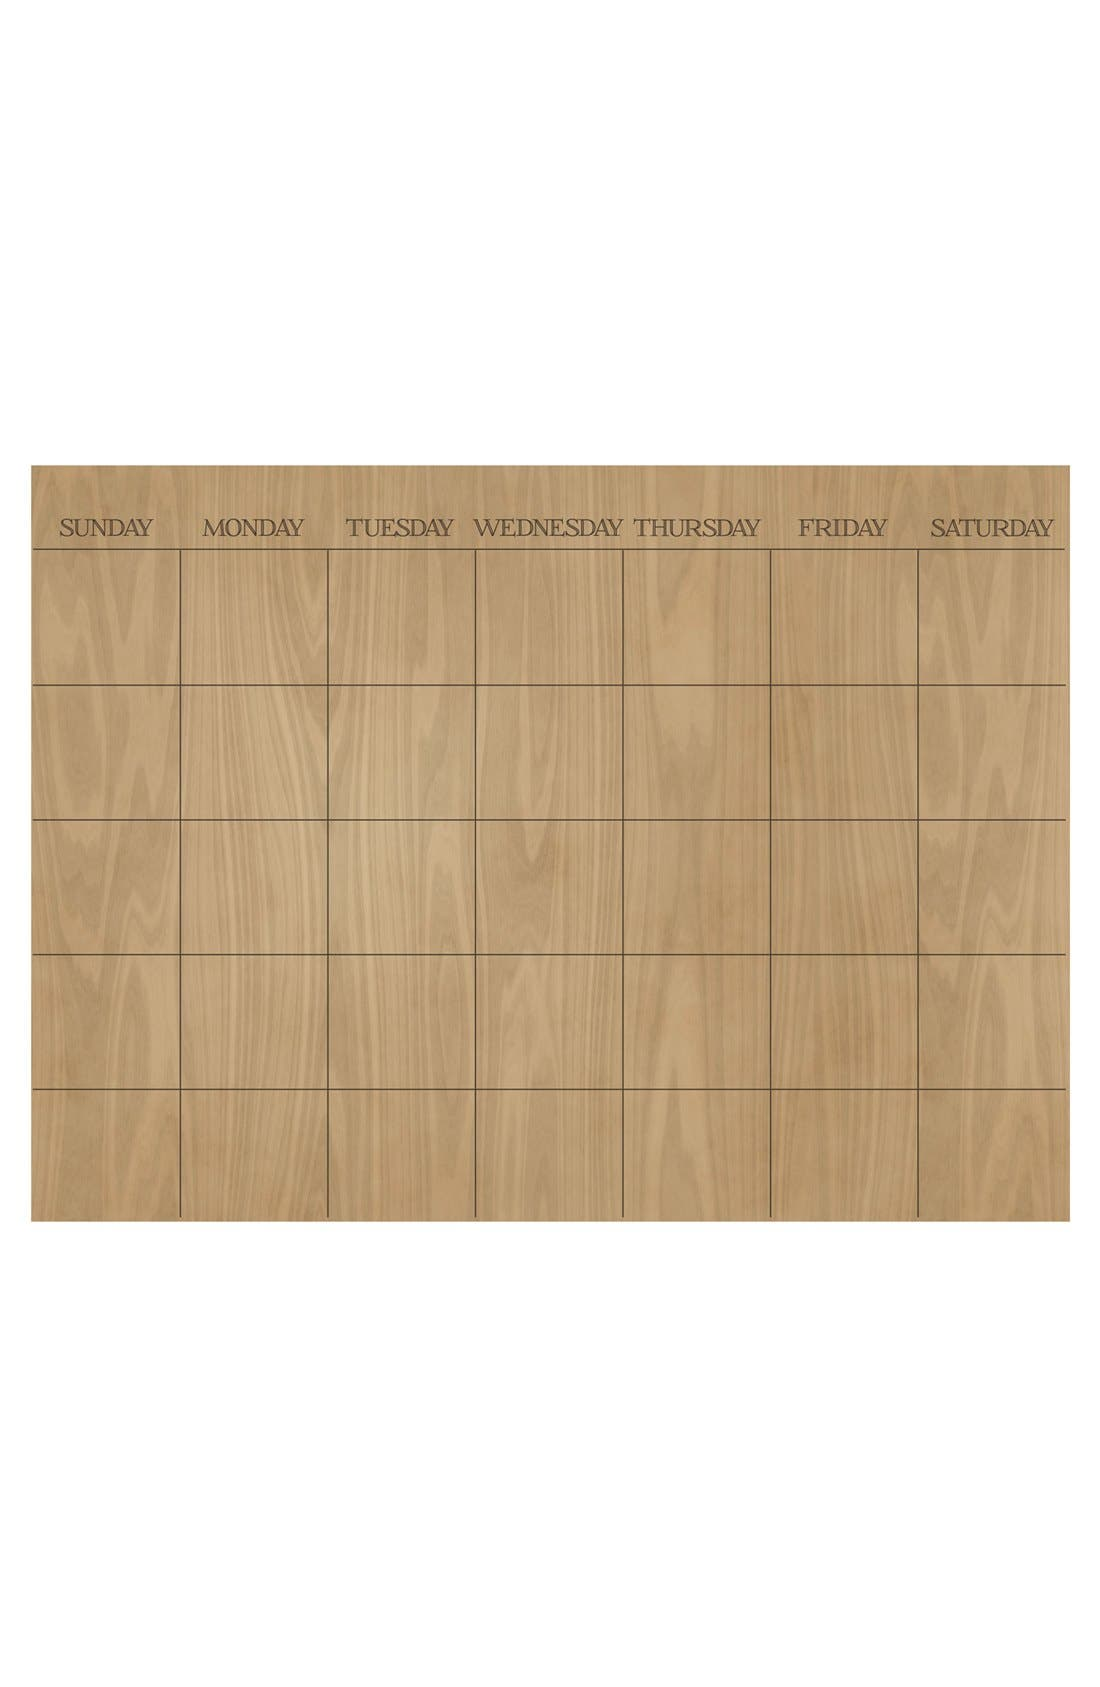 'Hardwood' Monthly Dry Erase Calendar,                         Main,                         color, 200